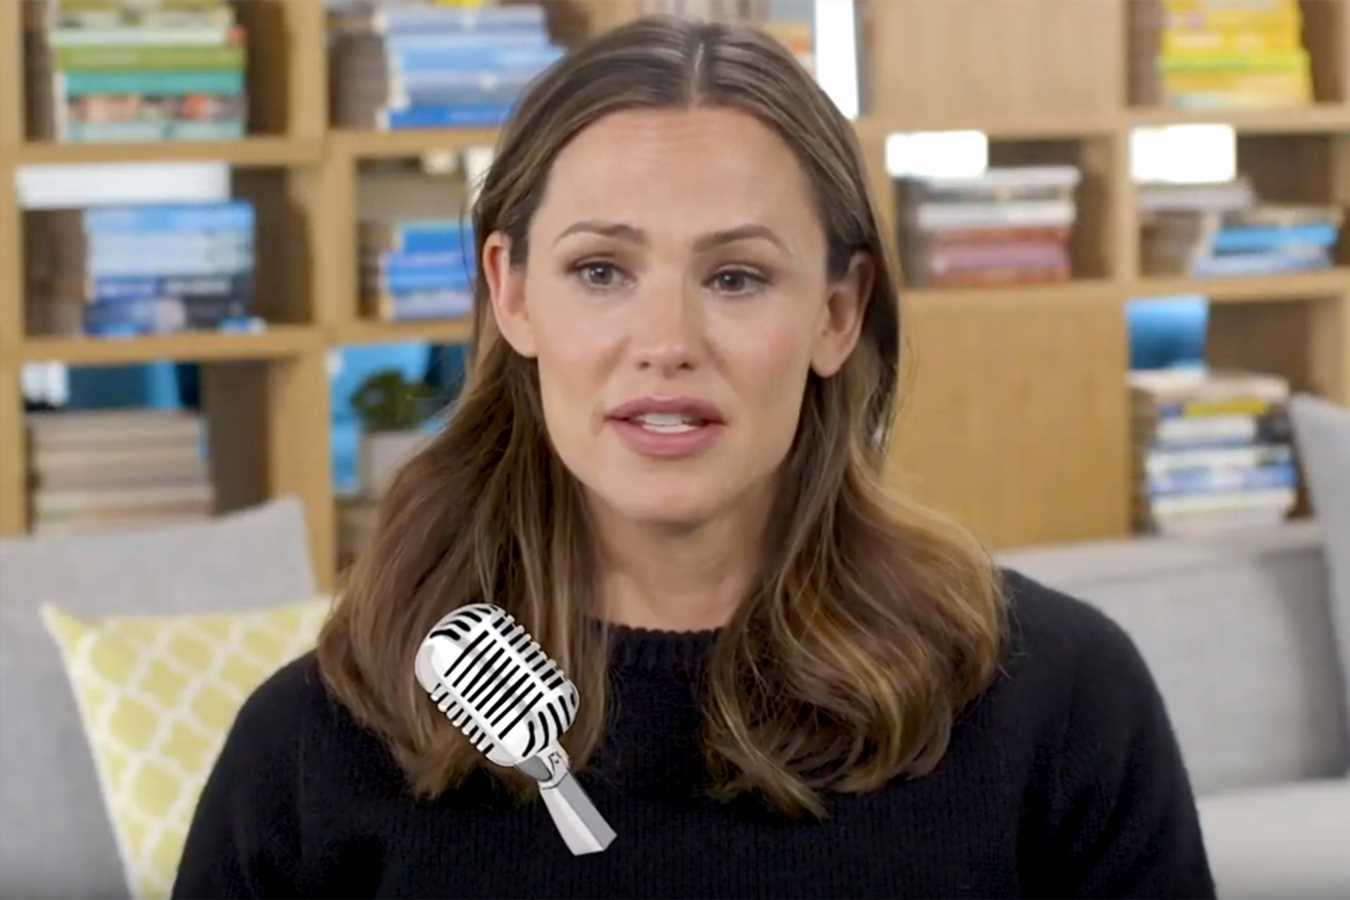 Jennifer Garner Reveals the Creative Game She Plays with Her Kids to Get Them to Try New Foods